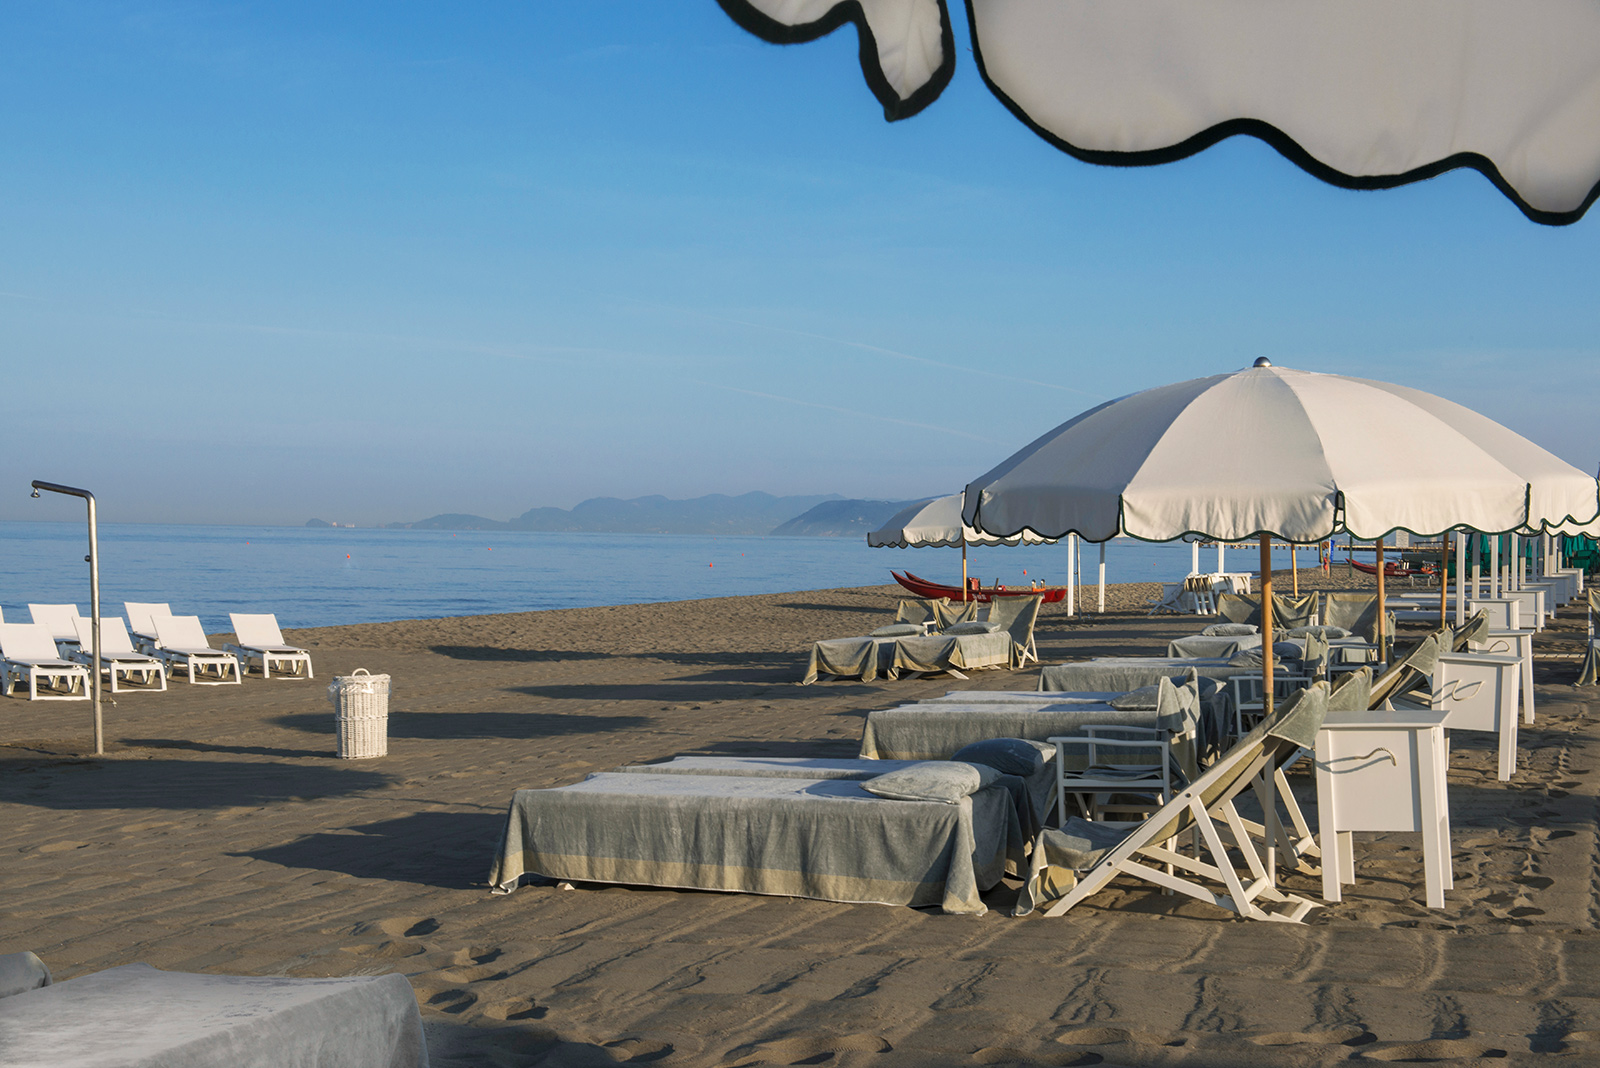 Is Beautifully Equipped With The Clic Wooden Cabins That You Can Admire Only In Forte Dei Marmi Gilda Beach Club Open From April To September